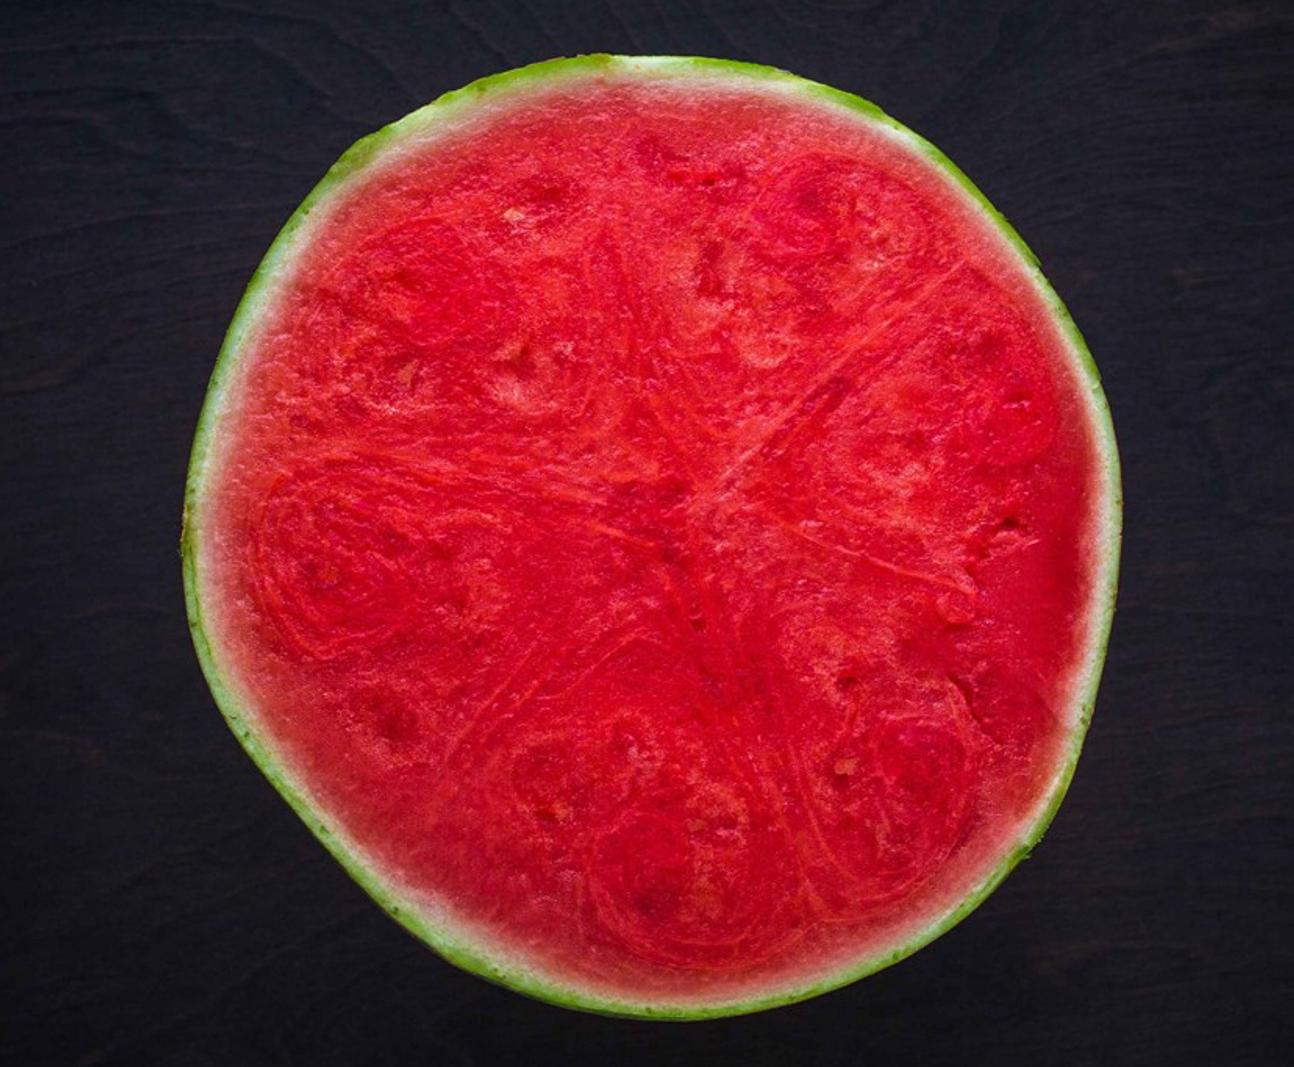 Blowing-up Watermelons